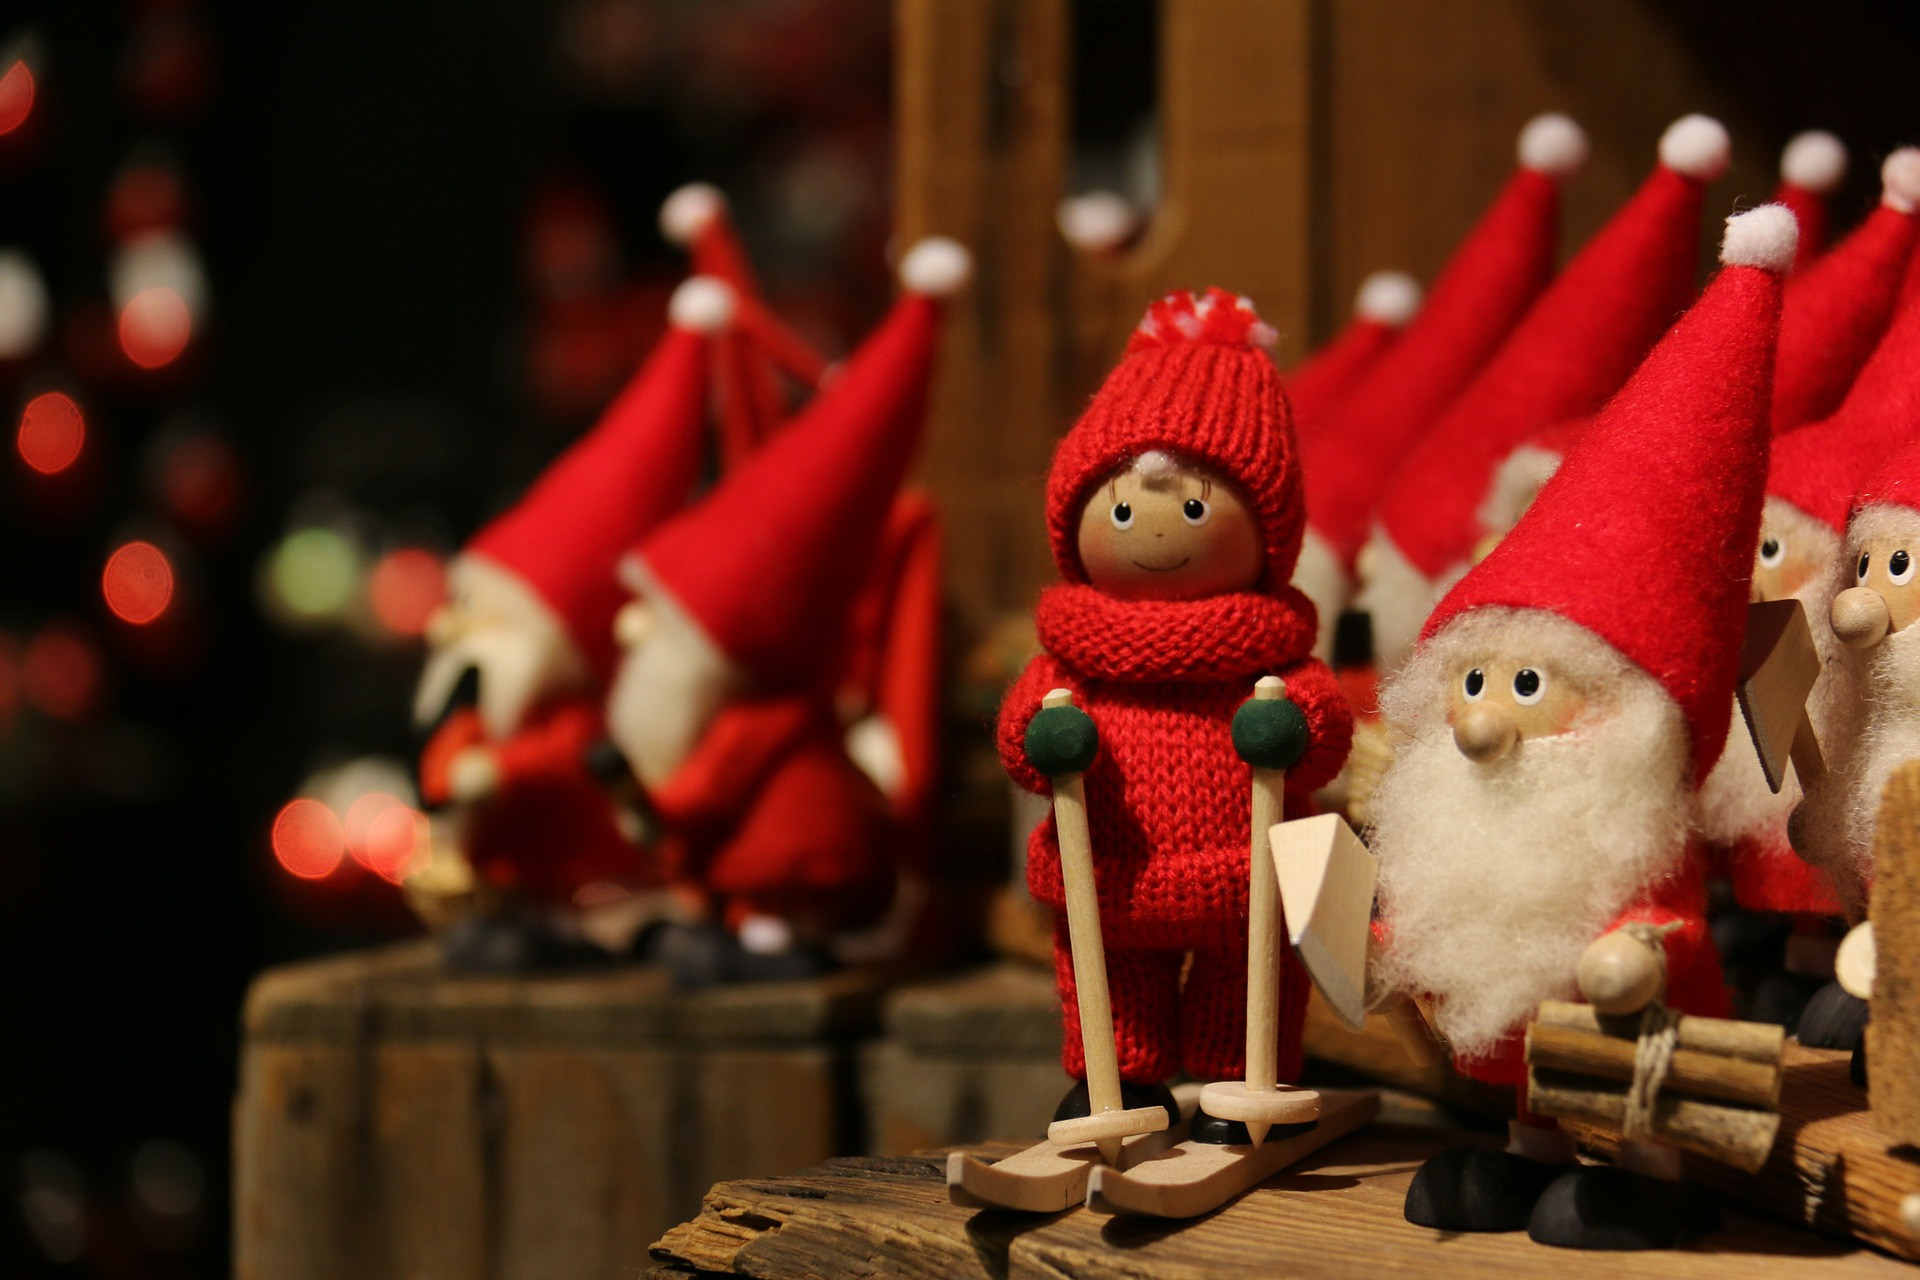 Free christmas images free stock photos download 2,180